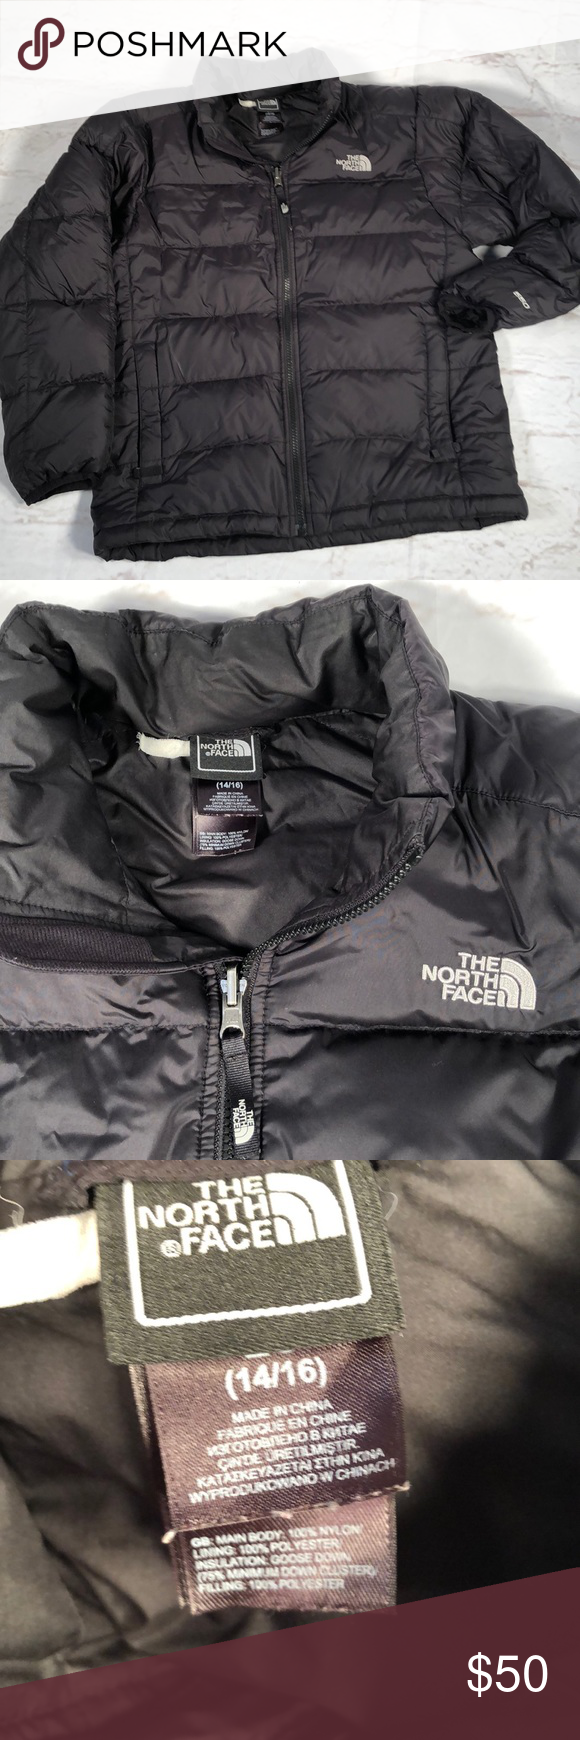 The North Face Puffer Jacket 14 16 Black North Face Puffer Jacket The North Face Puffer Jacket North Face Jacket [ 1740 x 580 Pixel ]